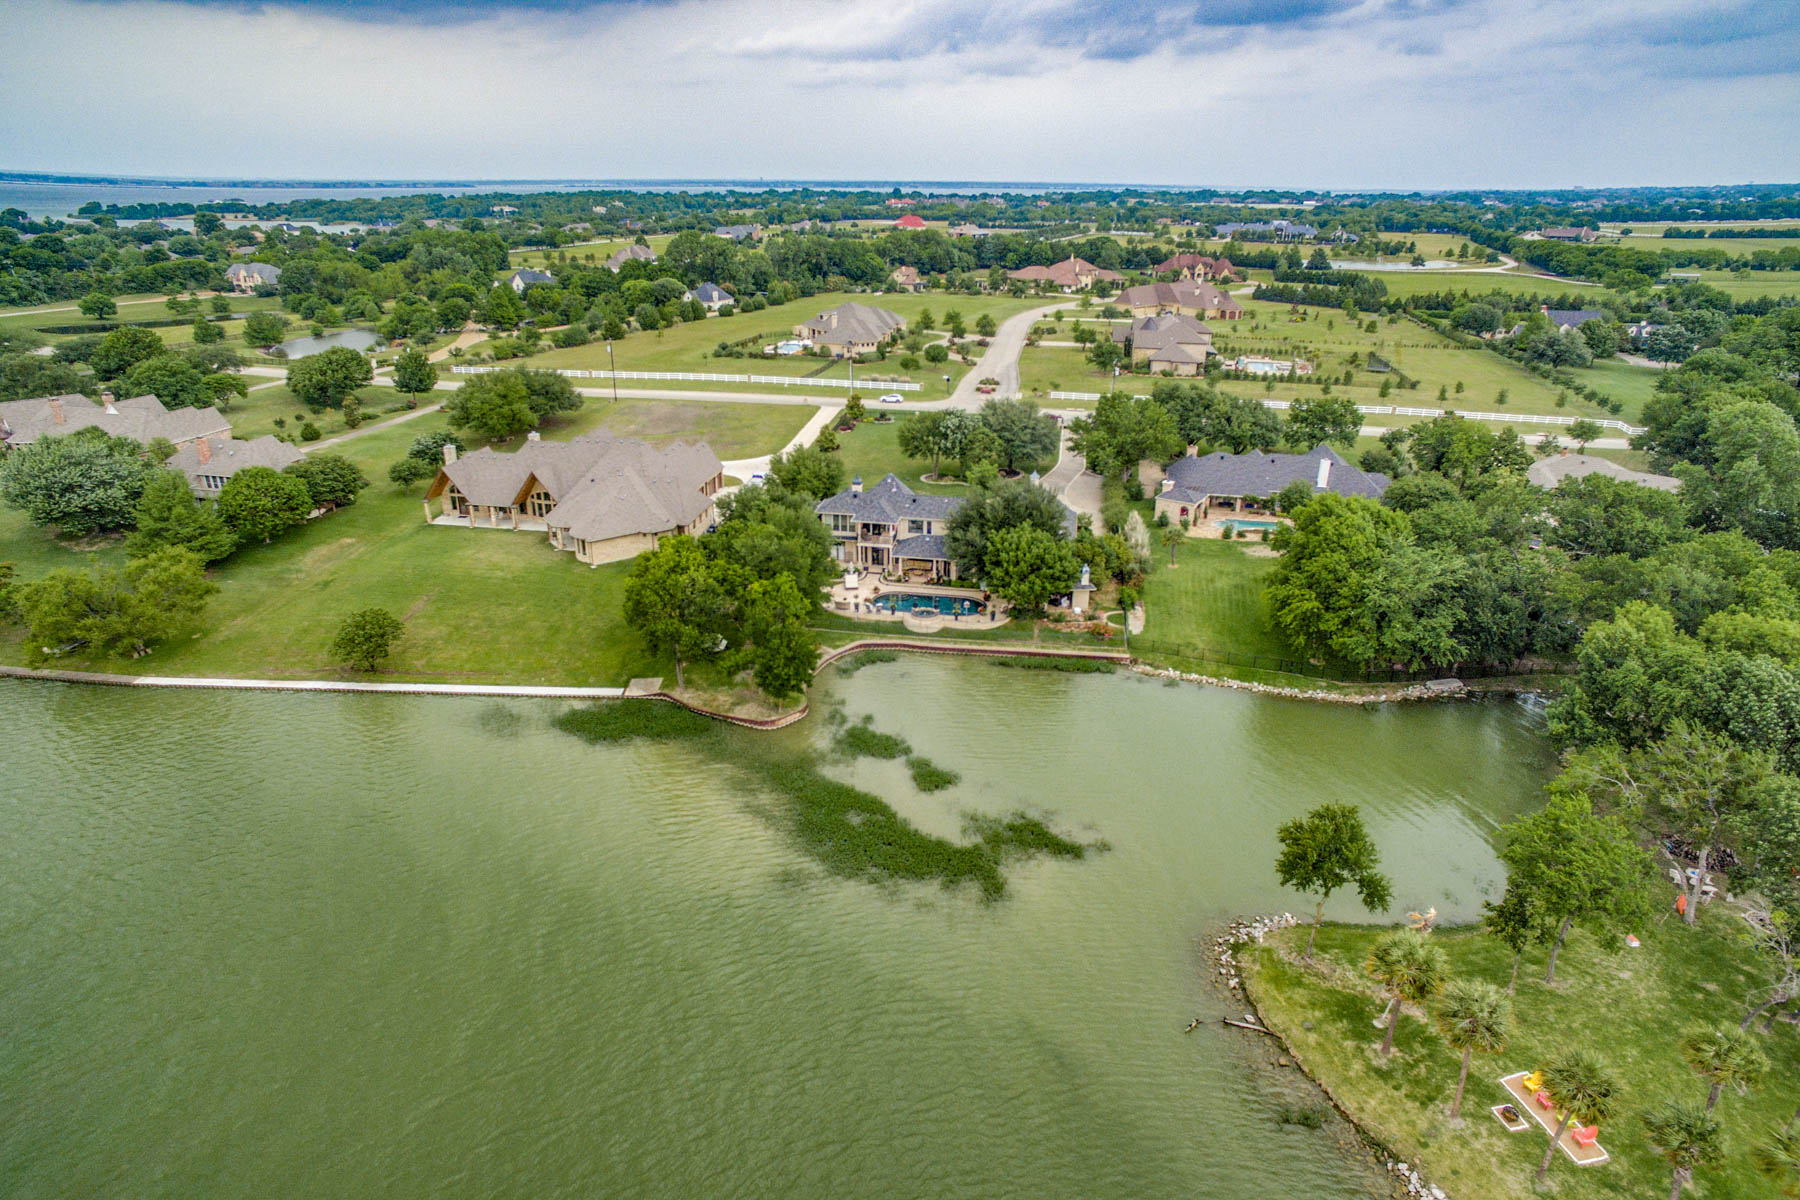 Single Family Home for Sale at Lake Ray Hubbard Waterfront Views 205 Rush Creek Dr, Heath, Texas, 75032 United States